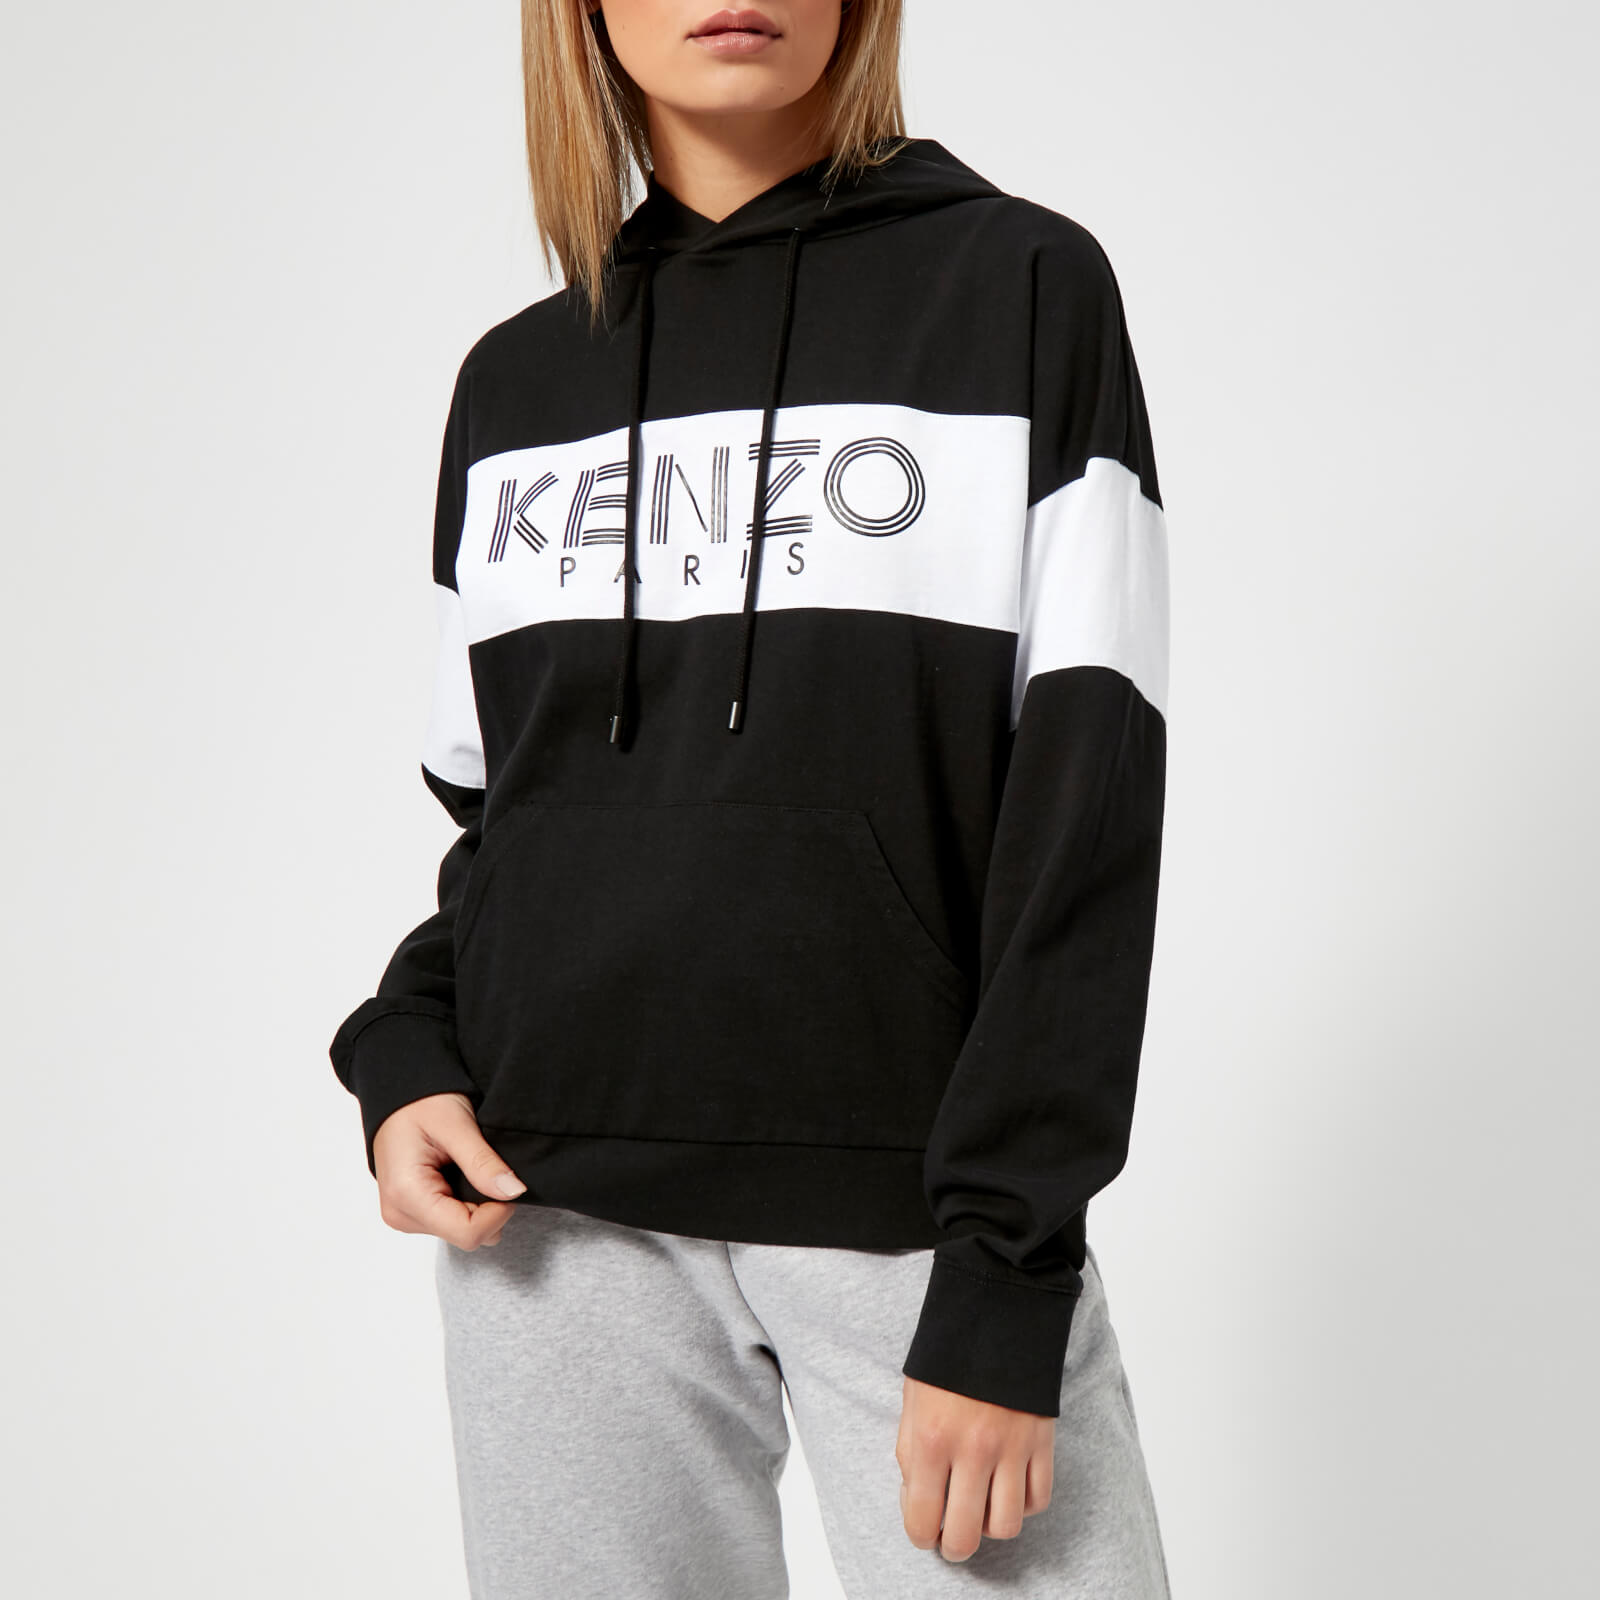 a70b8cf5 KENZO Women's Cotton Skate Jersey Hooded Jumper - Black - Free UK Delivery  over £50